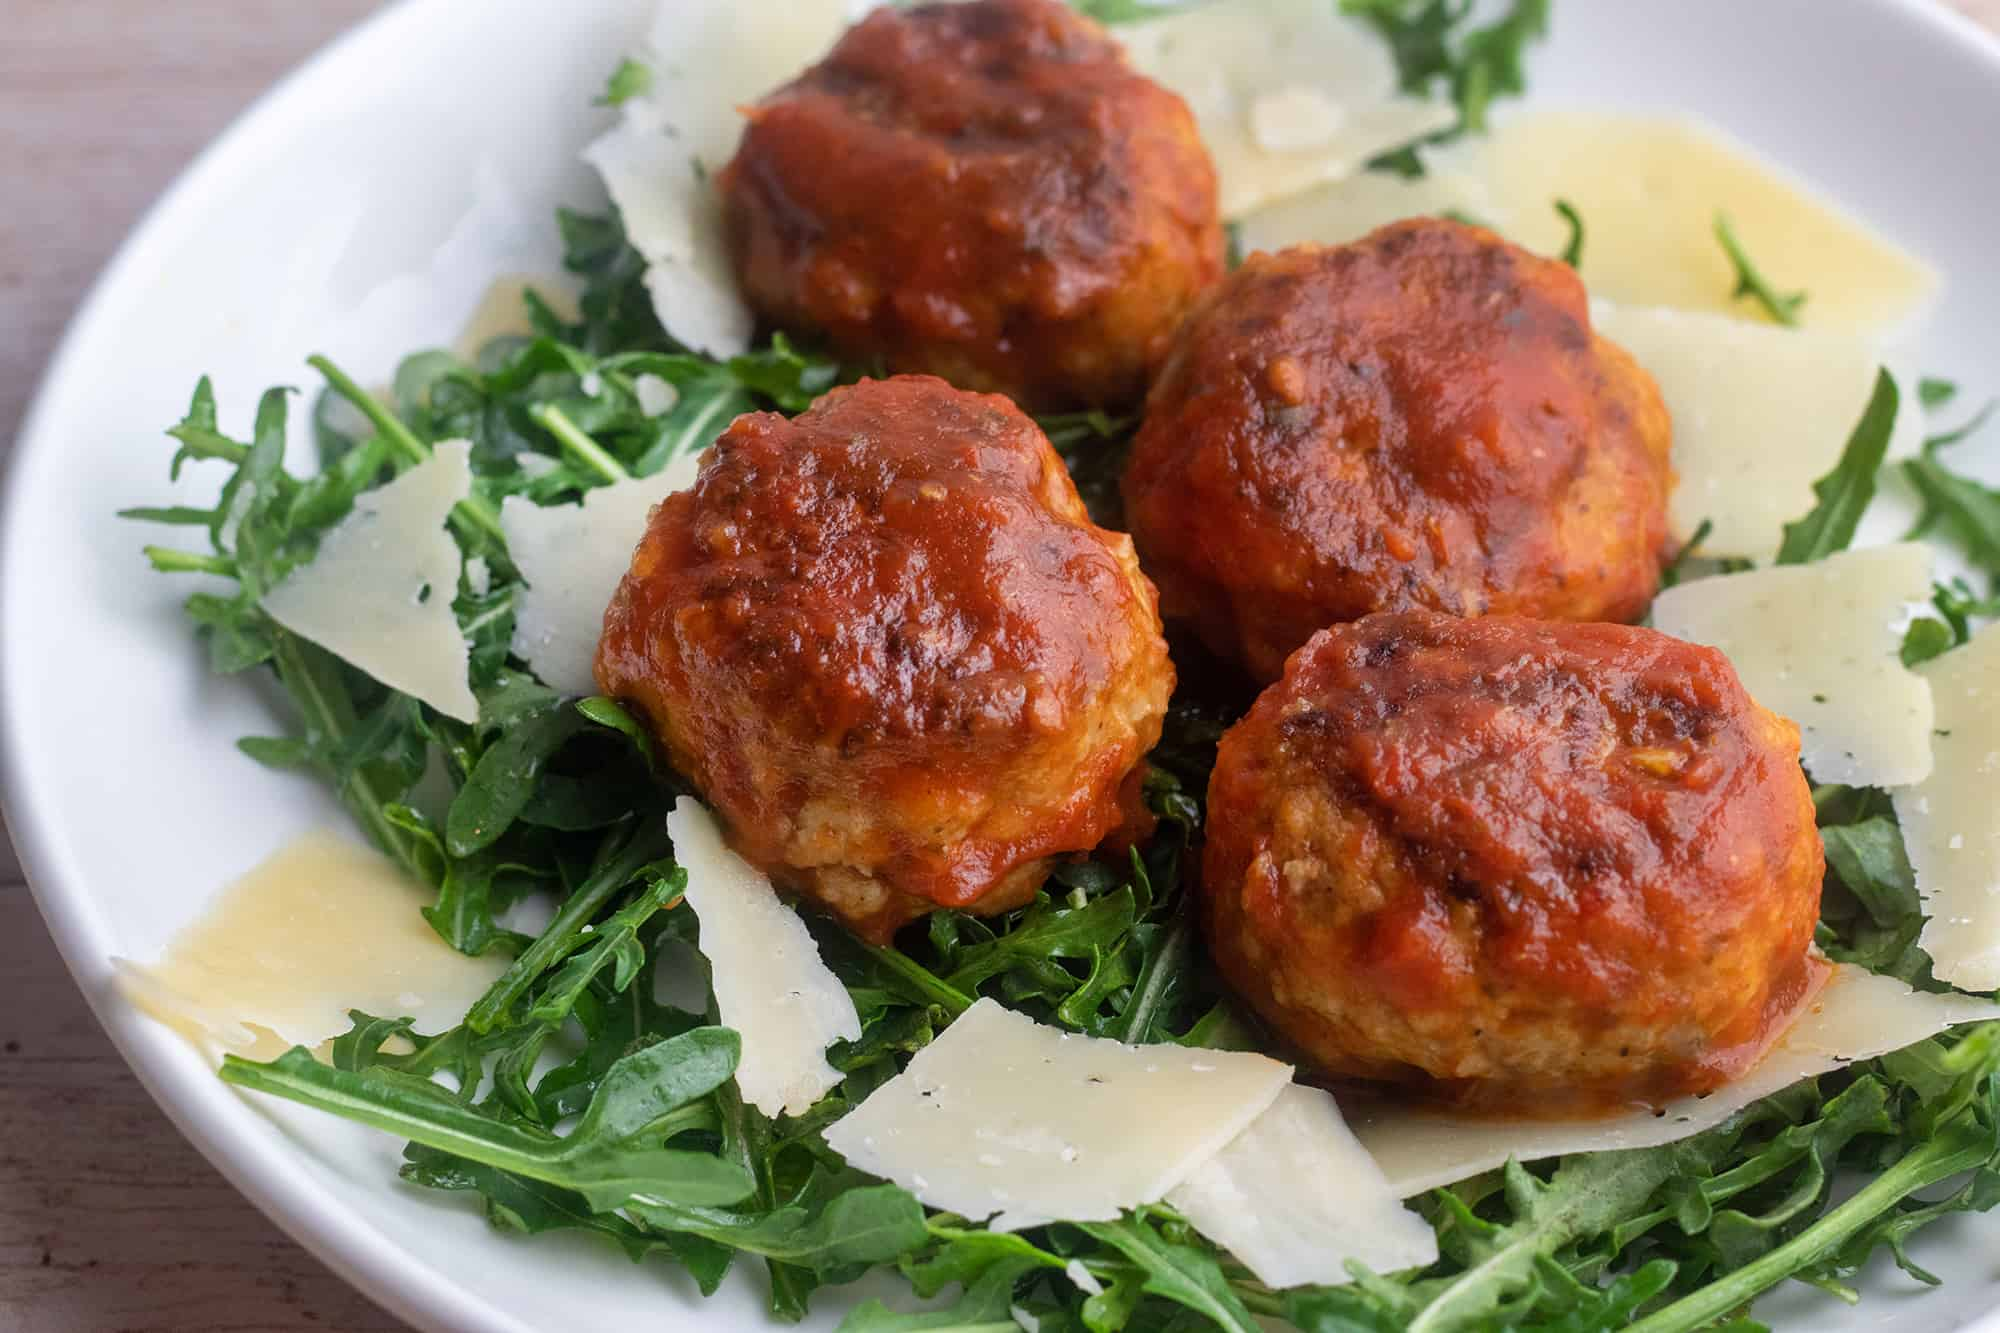 Make Giada's Meatball Recipes For National Meatball Day (Or Any Day)